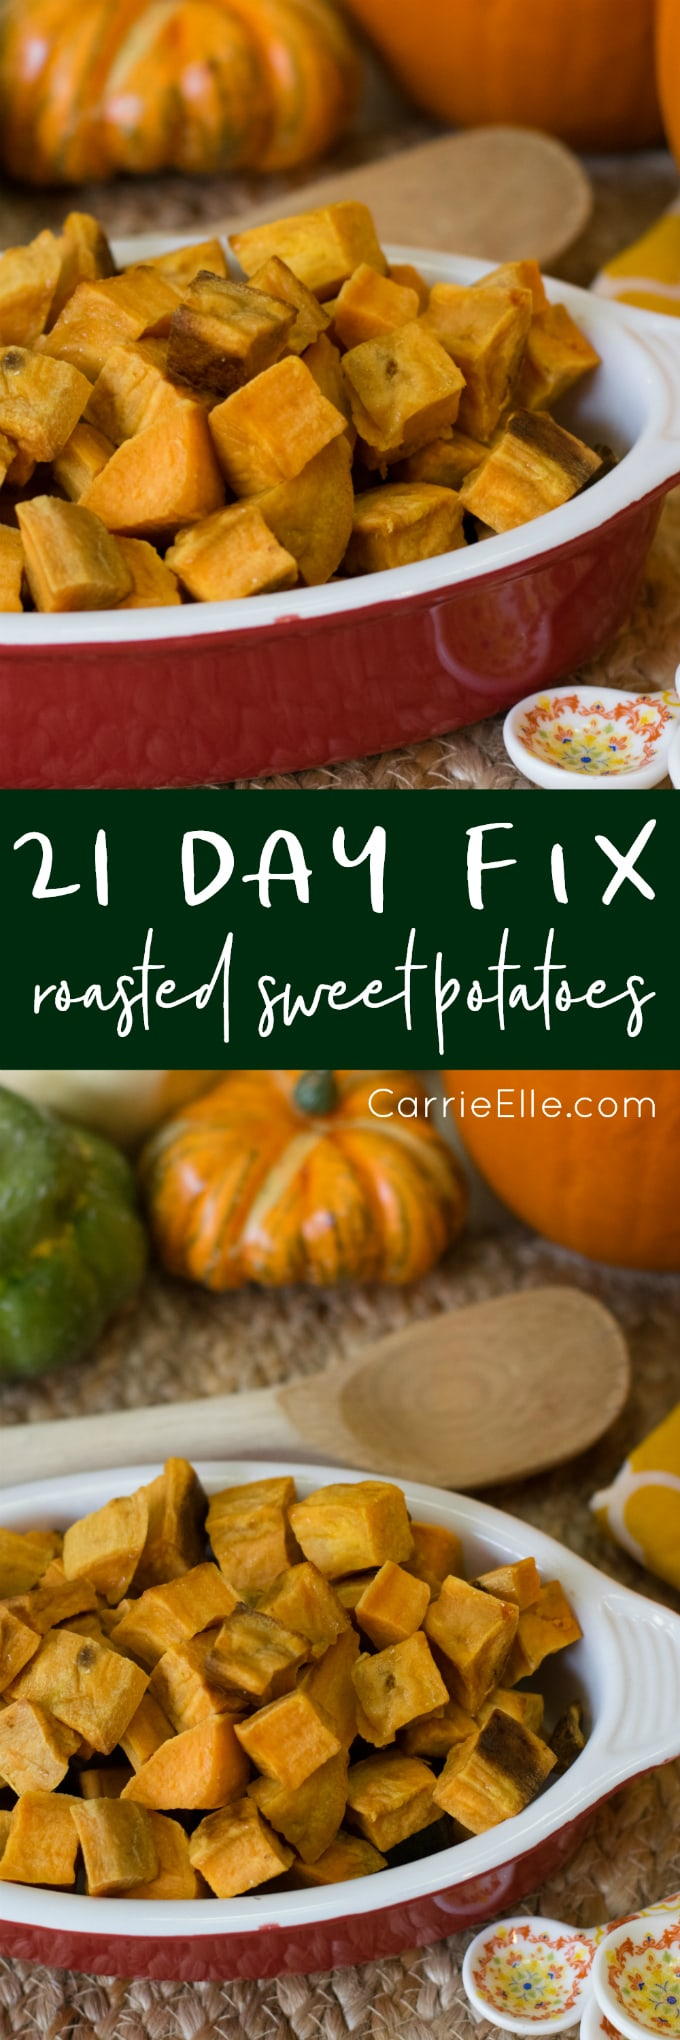 21 Day Fix Roasted Sweet Potatoes